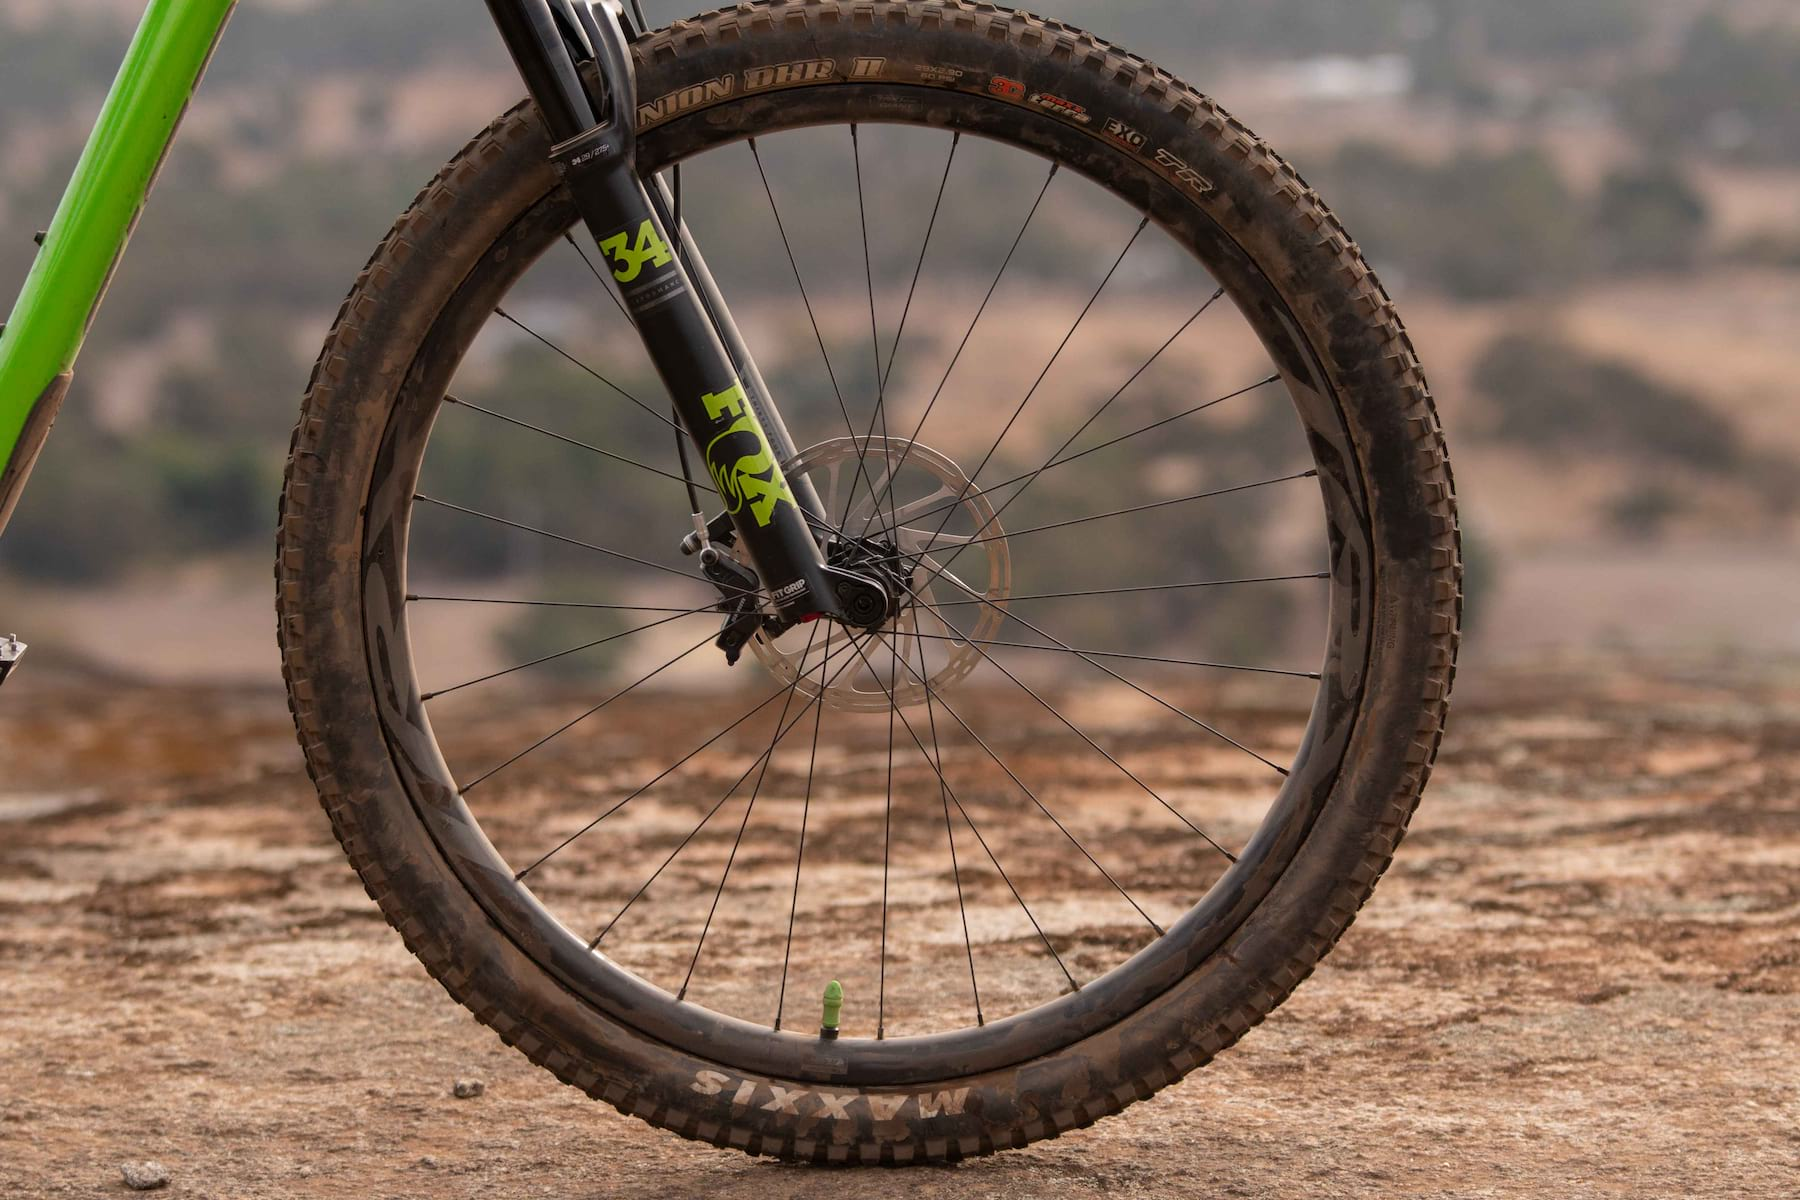 2019 giant trance advanced pro 29 trx 1 carbon wheel